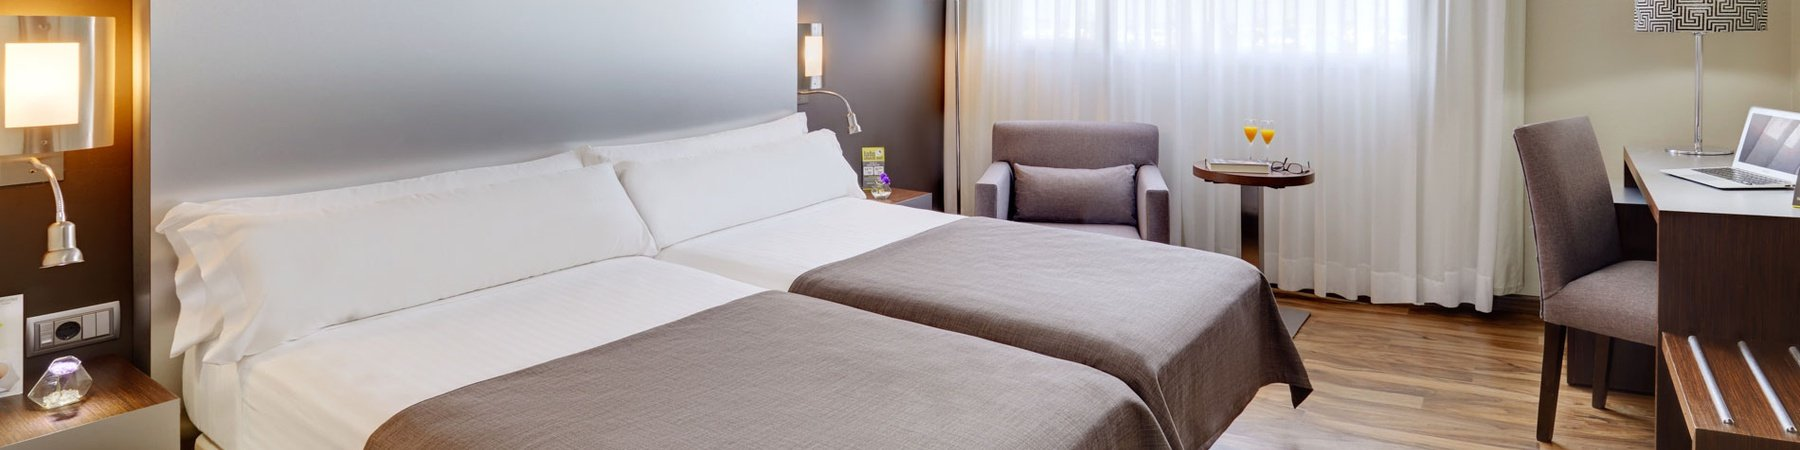 Rooms - Sercotel JC1 Murcia